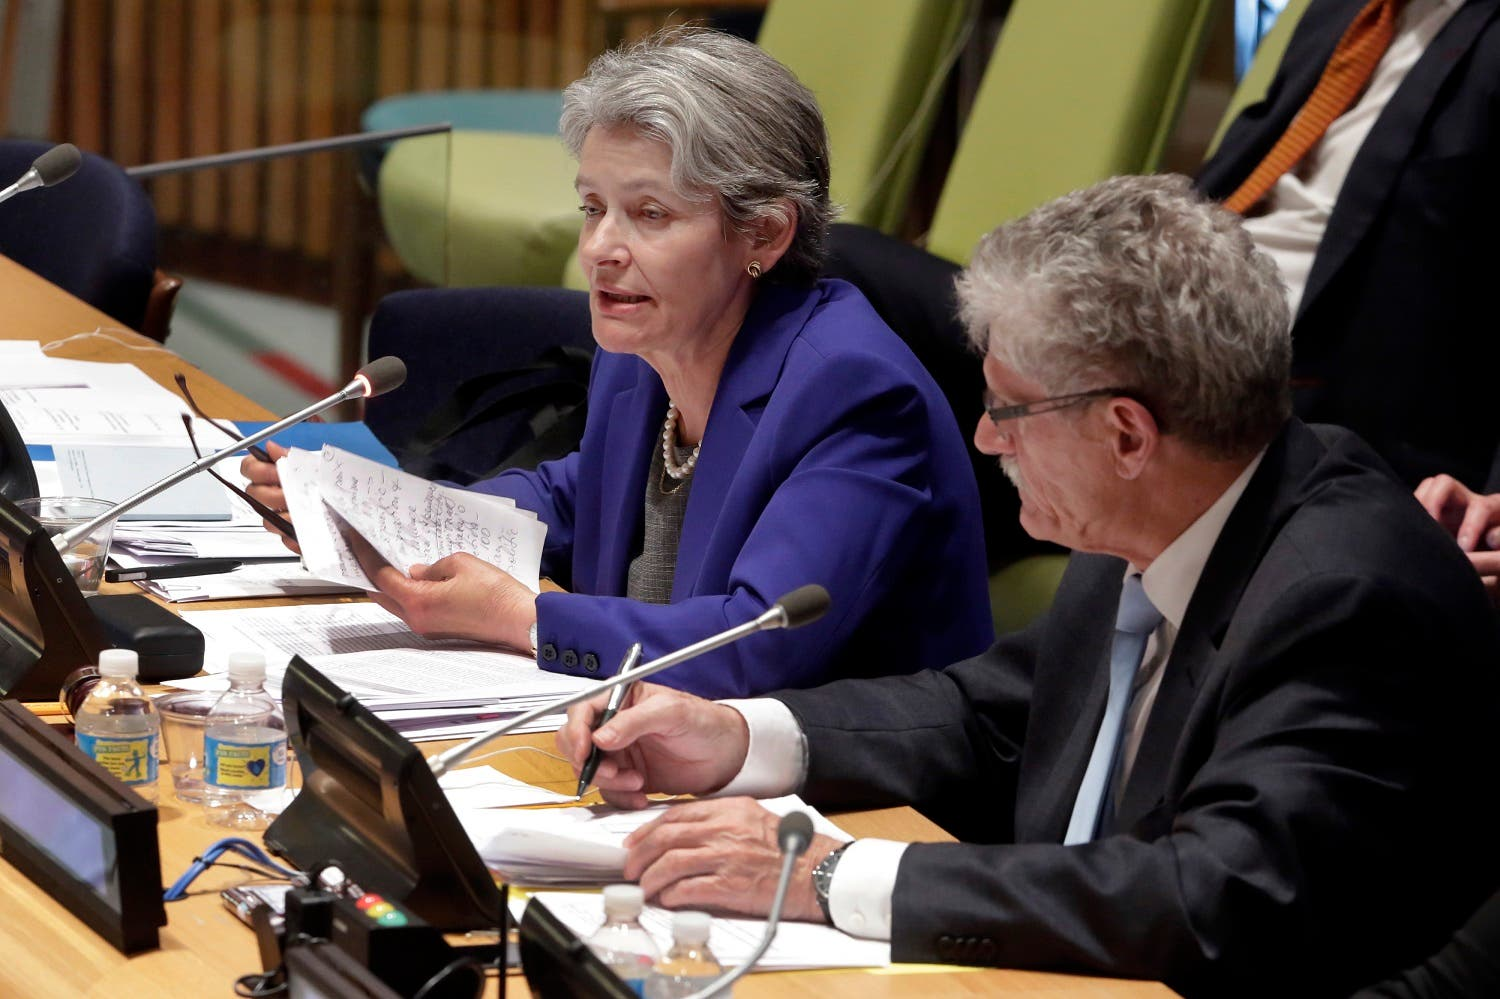 UN Secretary General candidate Irina Bokova, Director-General of UNESCO, responds to questions while U.N. General Assembly President Mogens Lykketoft, of Denmark, listens. (AP)